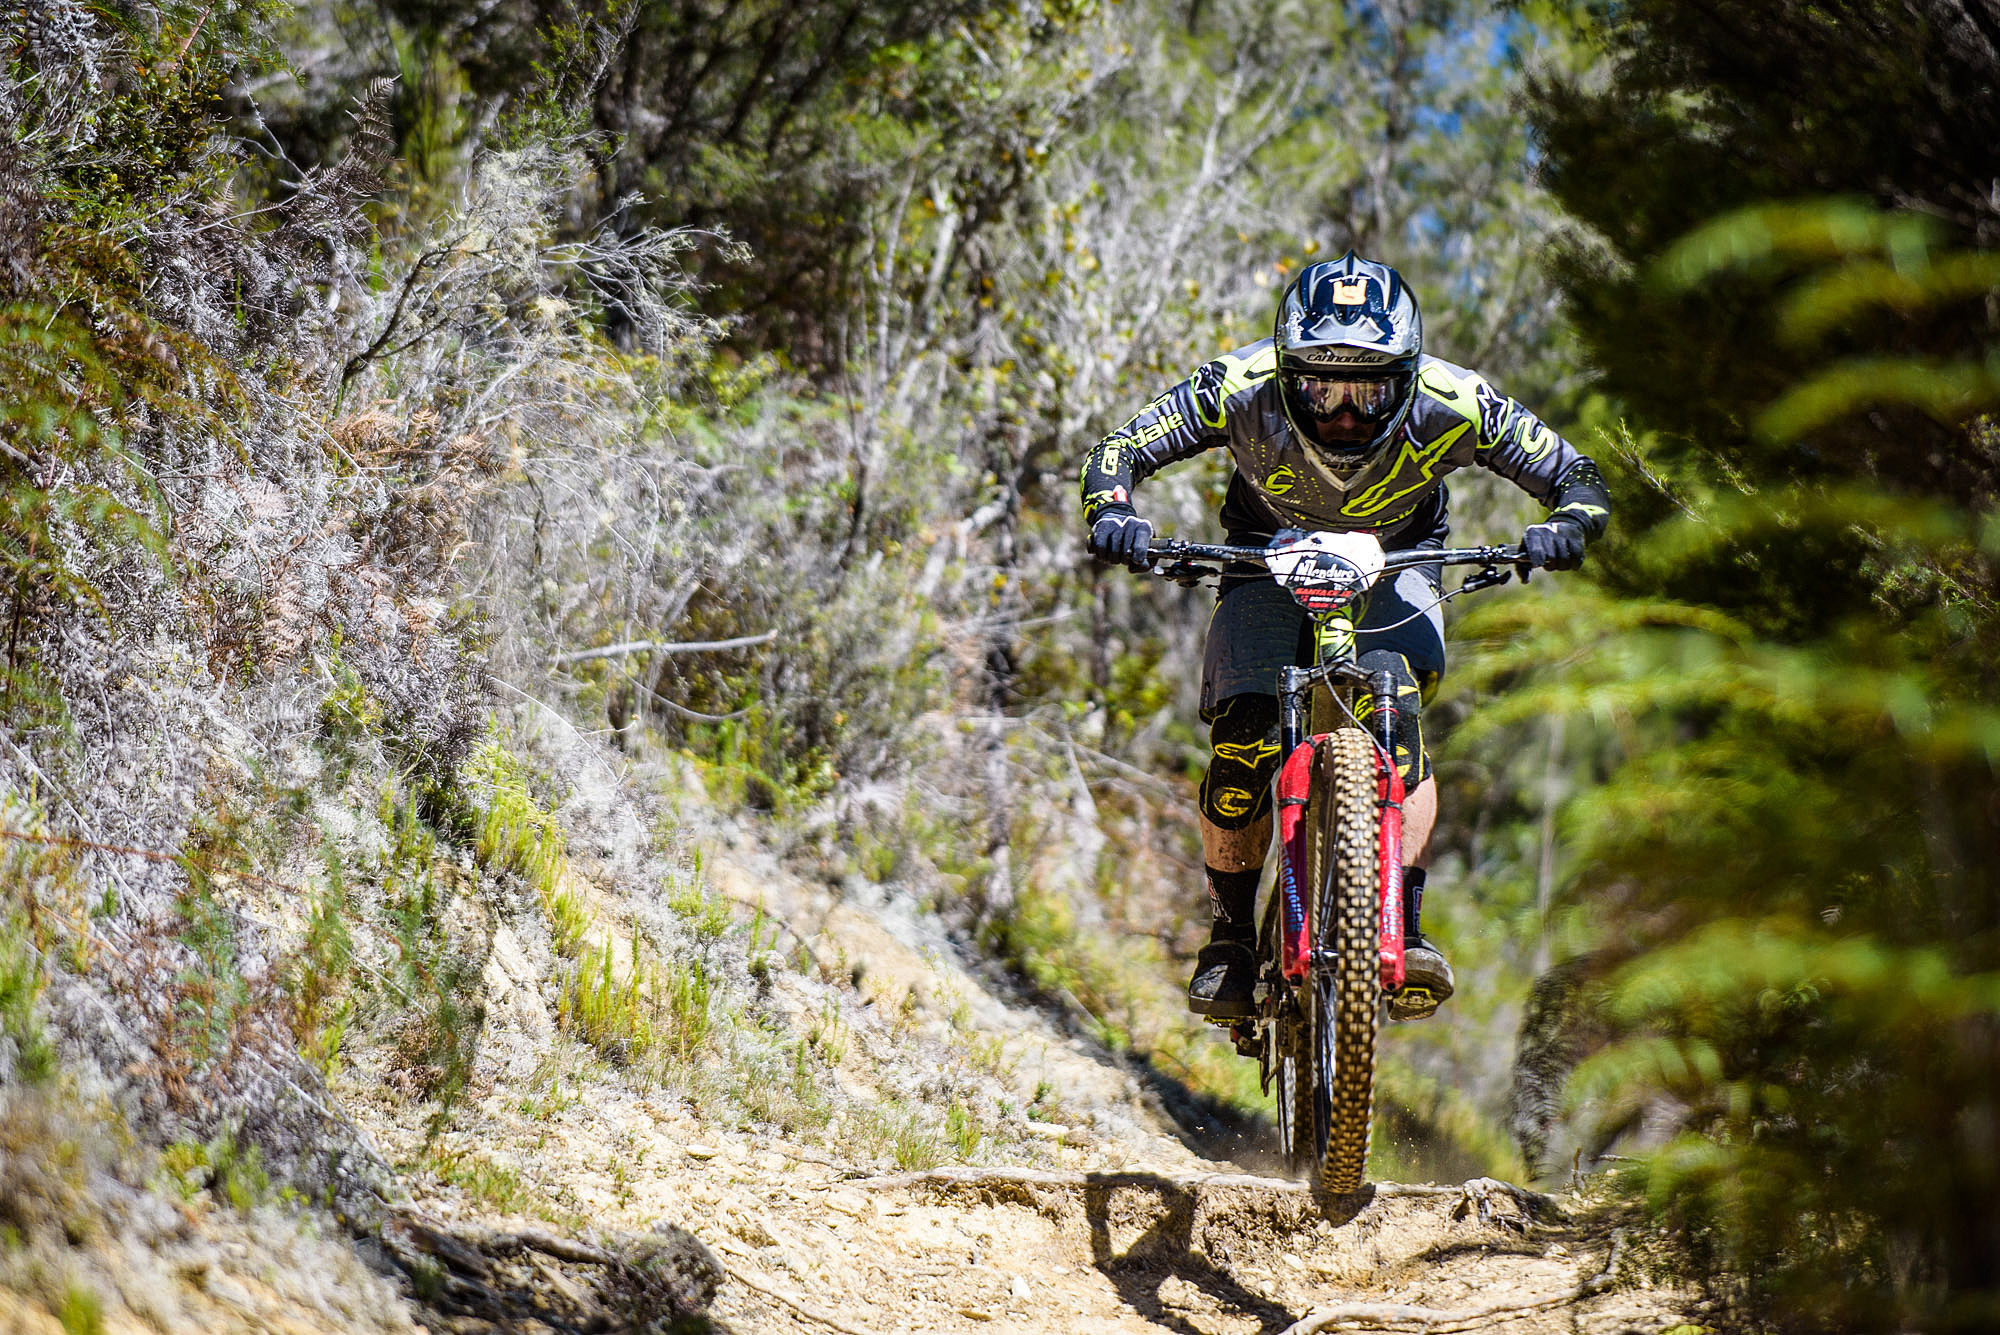 Jerome Clementz Must be one of the greatest ever mountain bike racers. there are very few races that he has entered and never won, NZ enduro took three tries, but he got it this year, beating Sam Shaw by a commanding one minute 51 seconds.